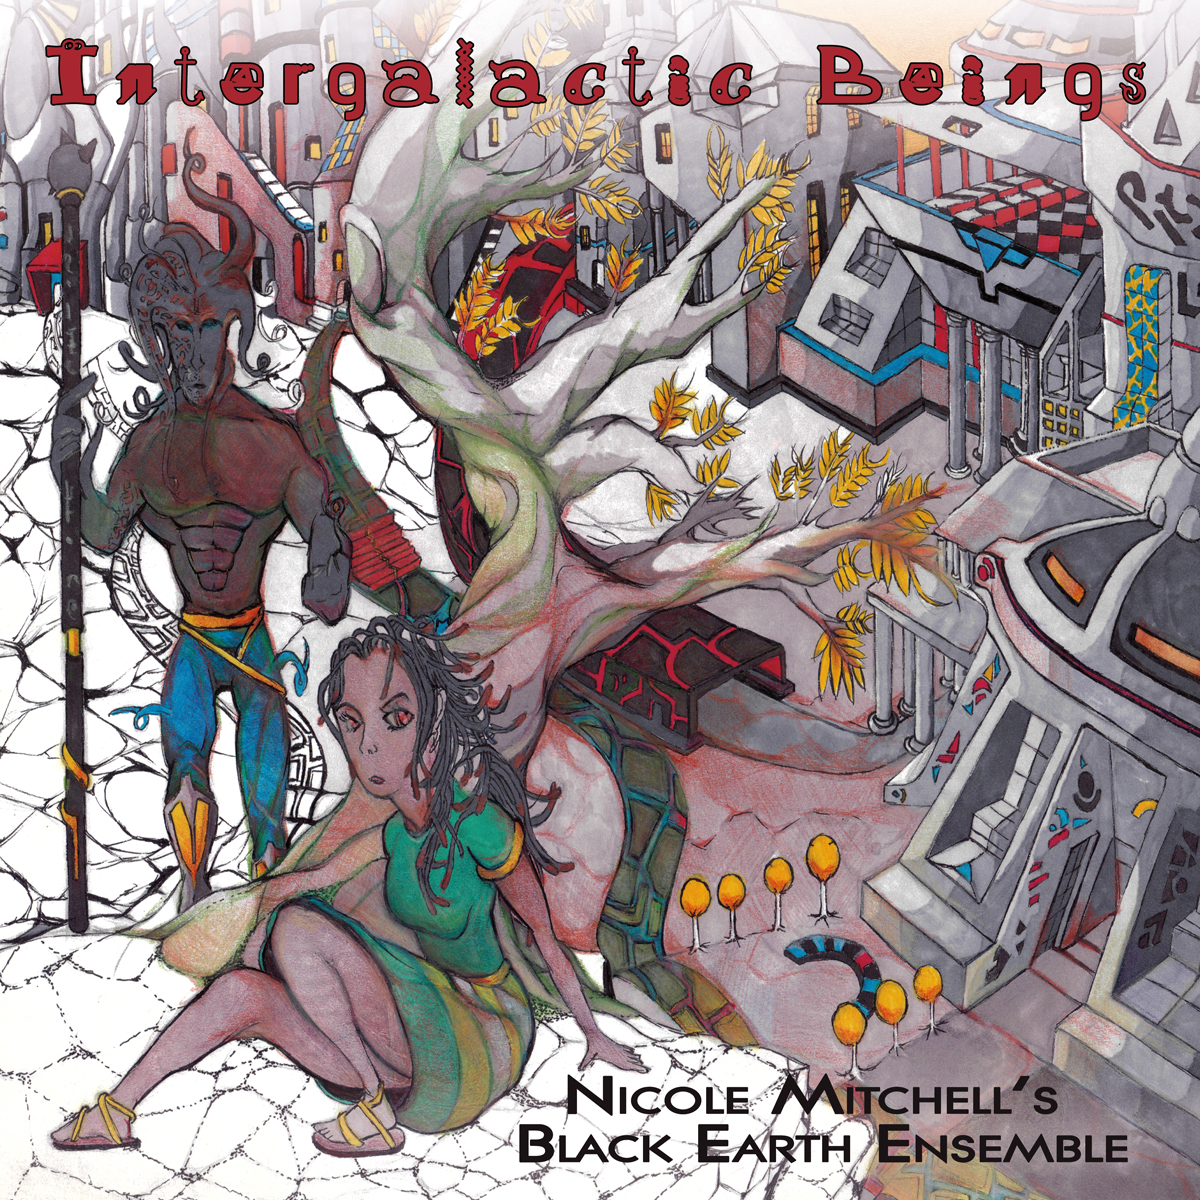 Intergalactic_Beings_Cover